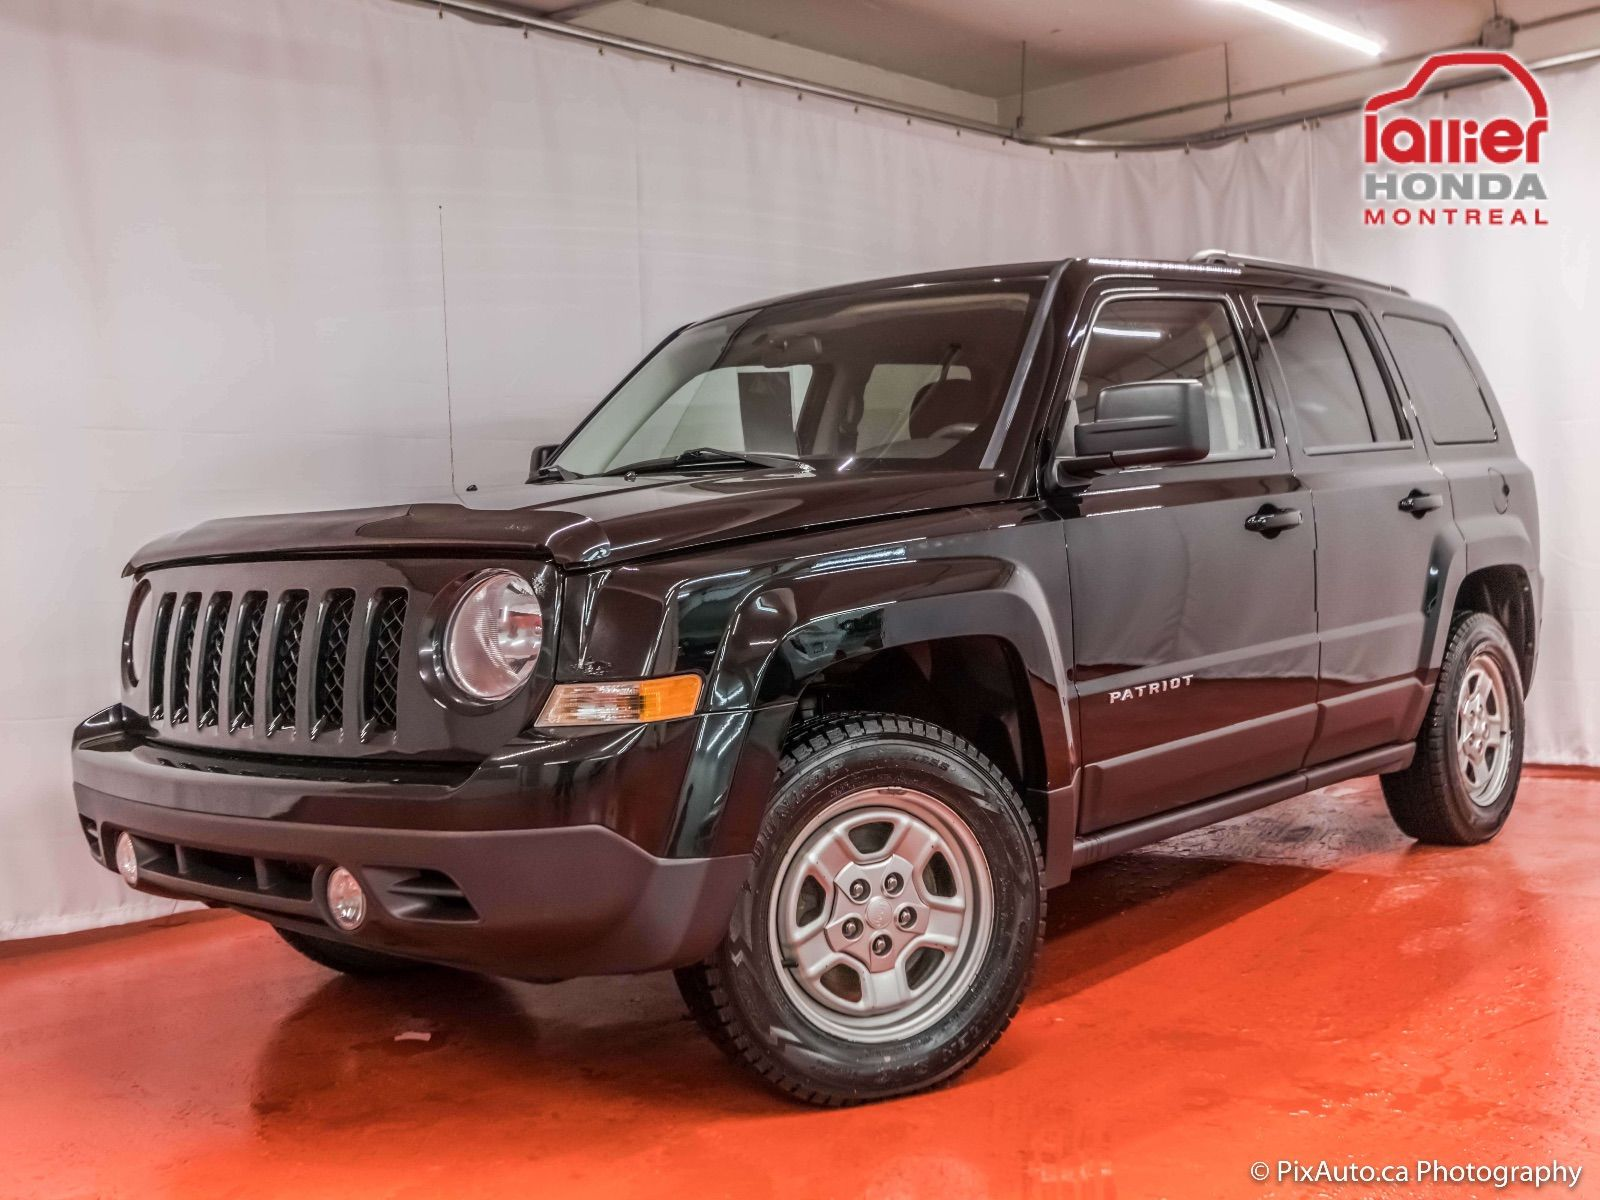 https://img.sm360.ca/images/inventory/lallier/jeep/patriot/2014/5334085/5334085_00543_2014-jeep-patriot_001.jpg